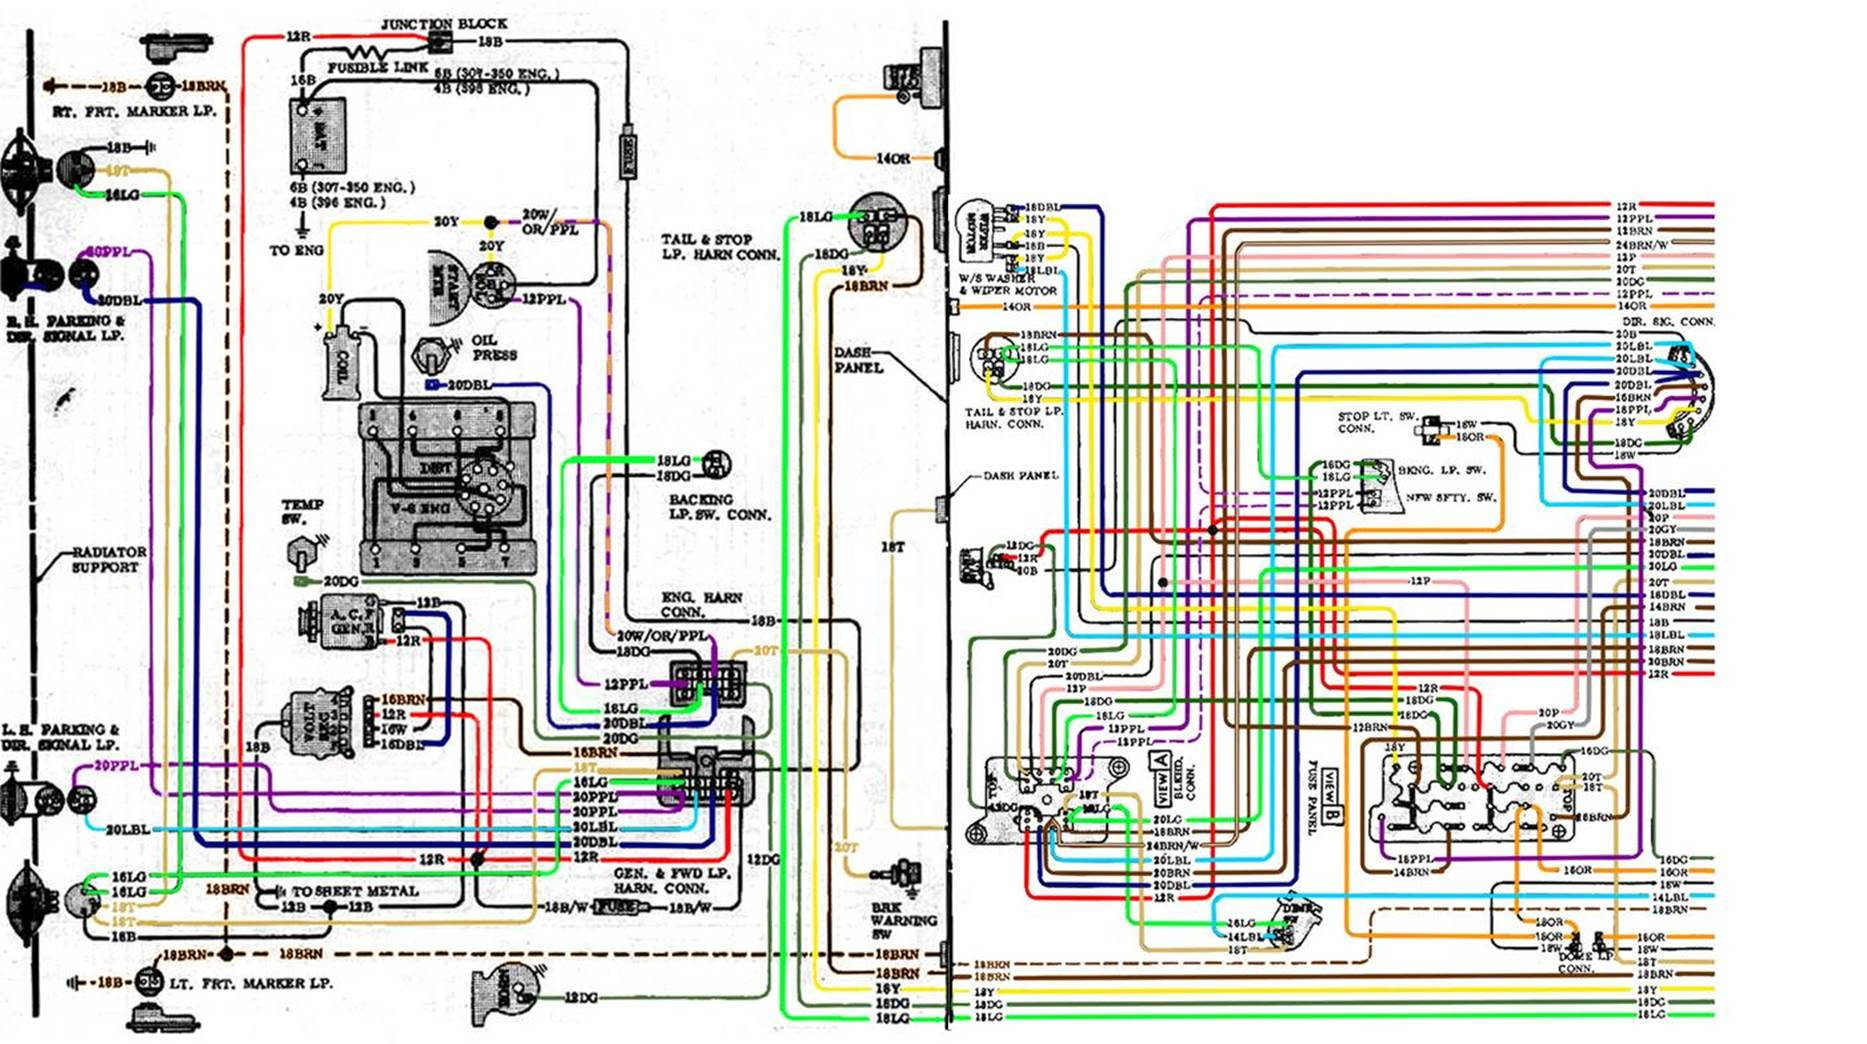 67 72 chevy wiring diagram rh outintheshop com 1970 c10 wiring harness diagram 1970 chevy c10 wiring diagram